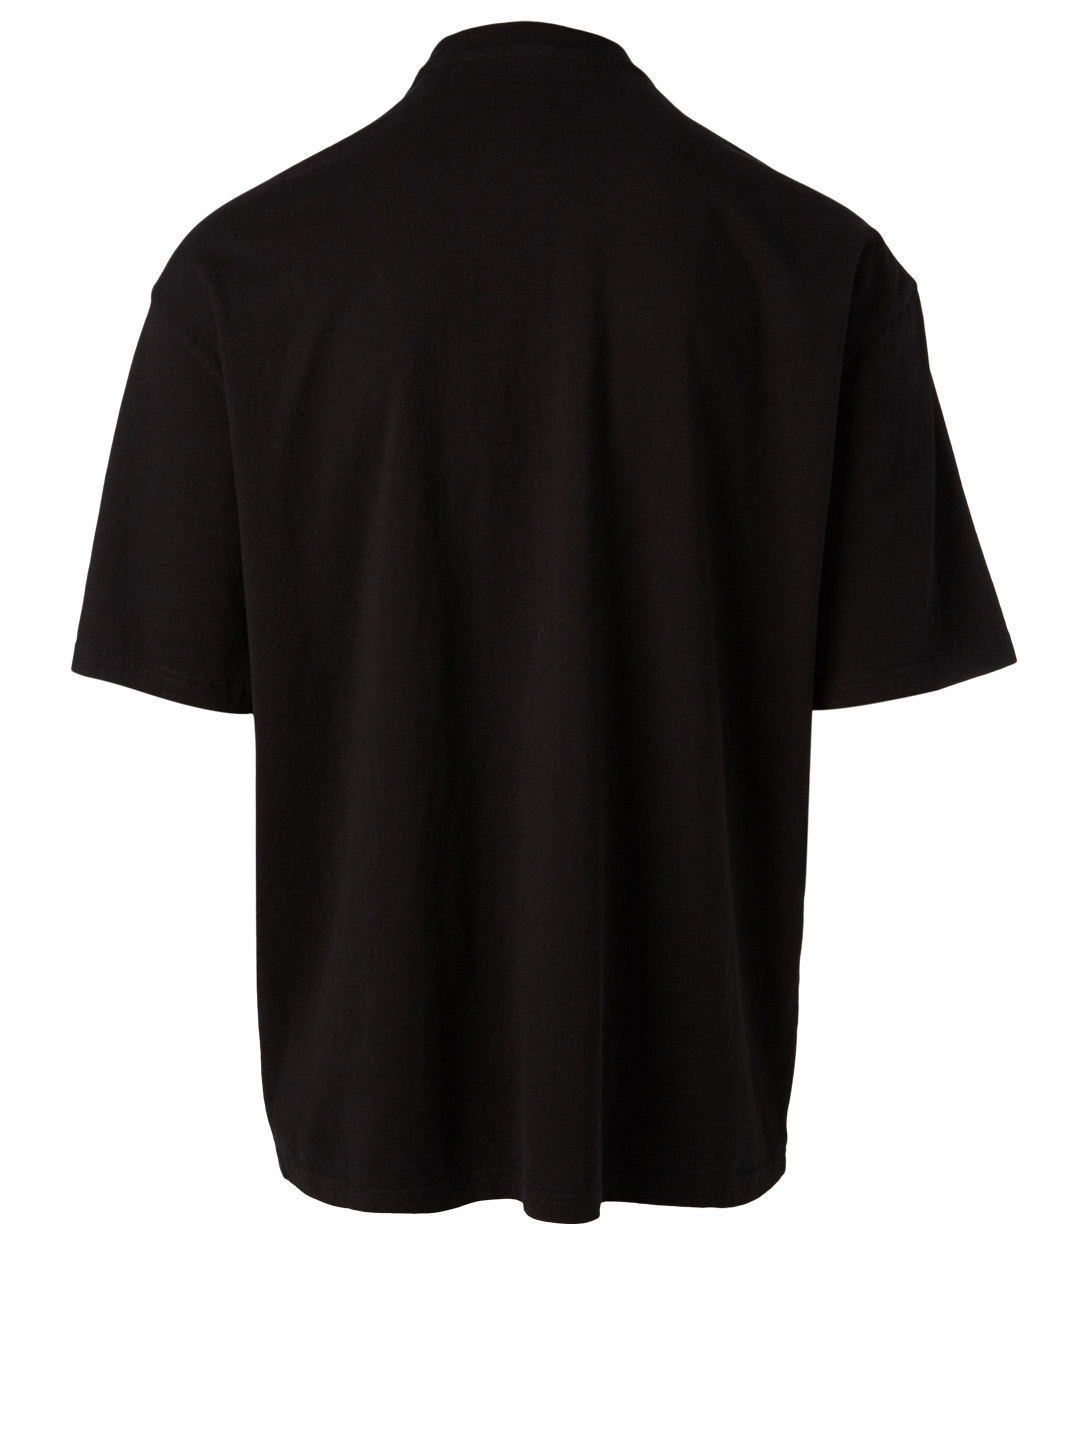 BALENCIAGA Speed T-Shirt Men's Black